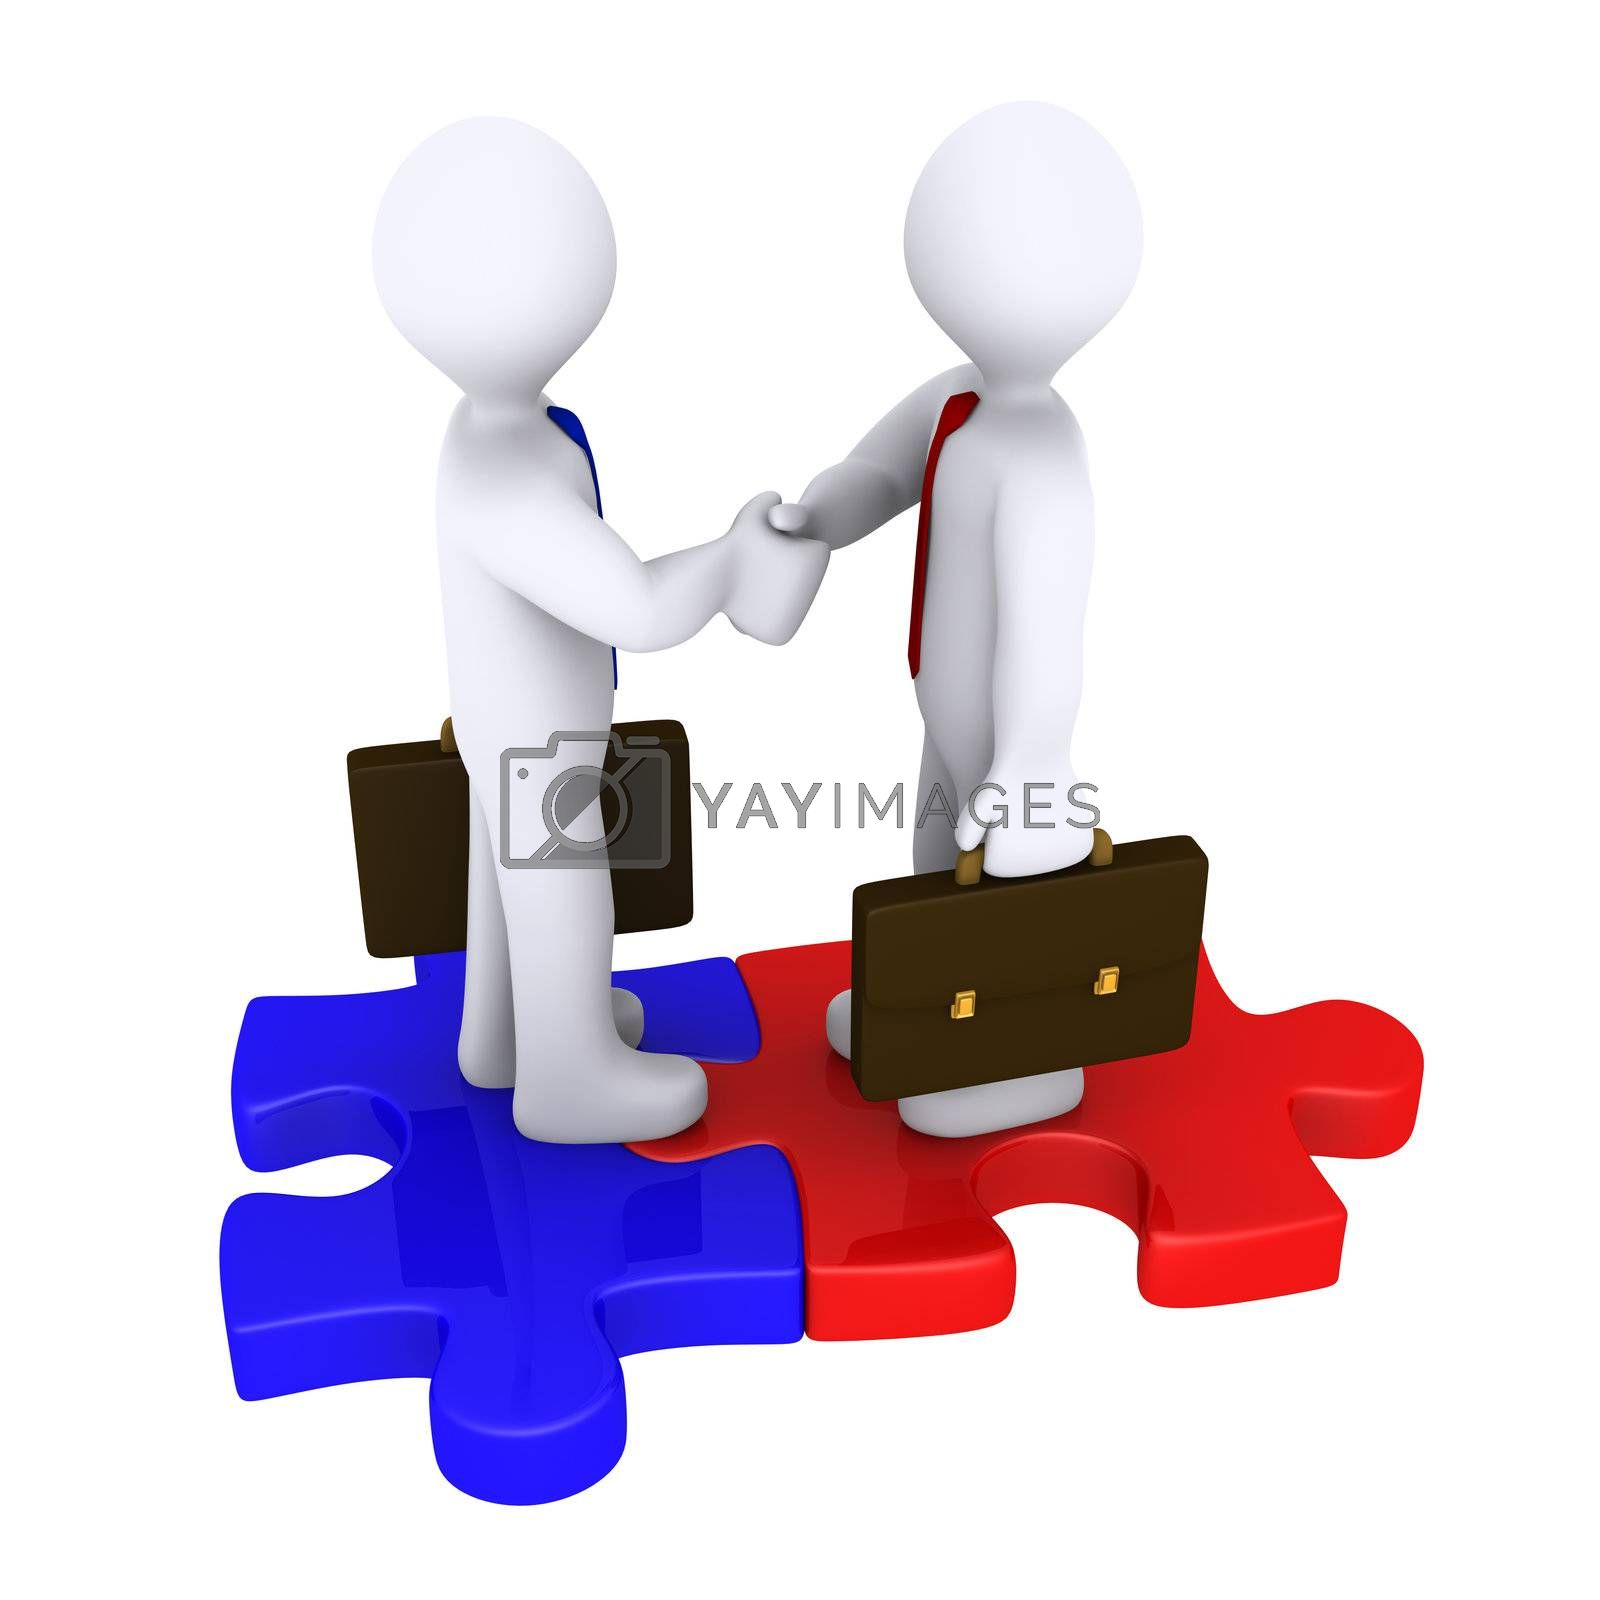 Handshake between two 3d businessmen standing on puzzle pieces